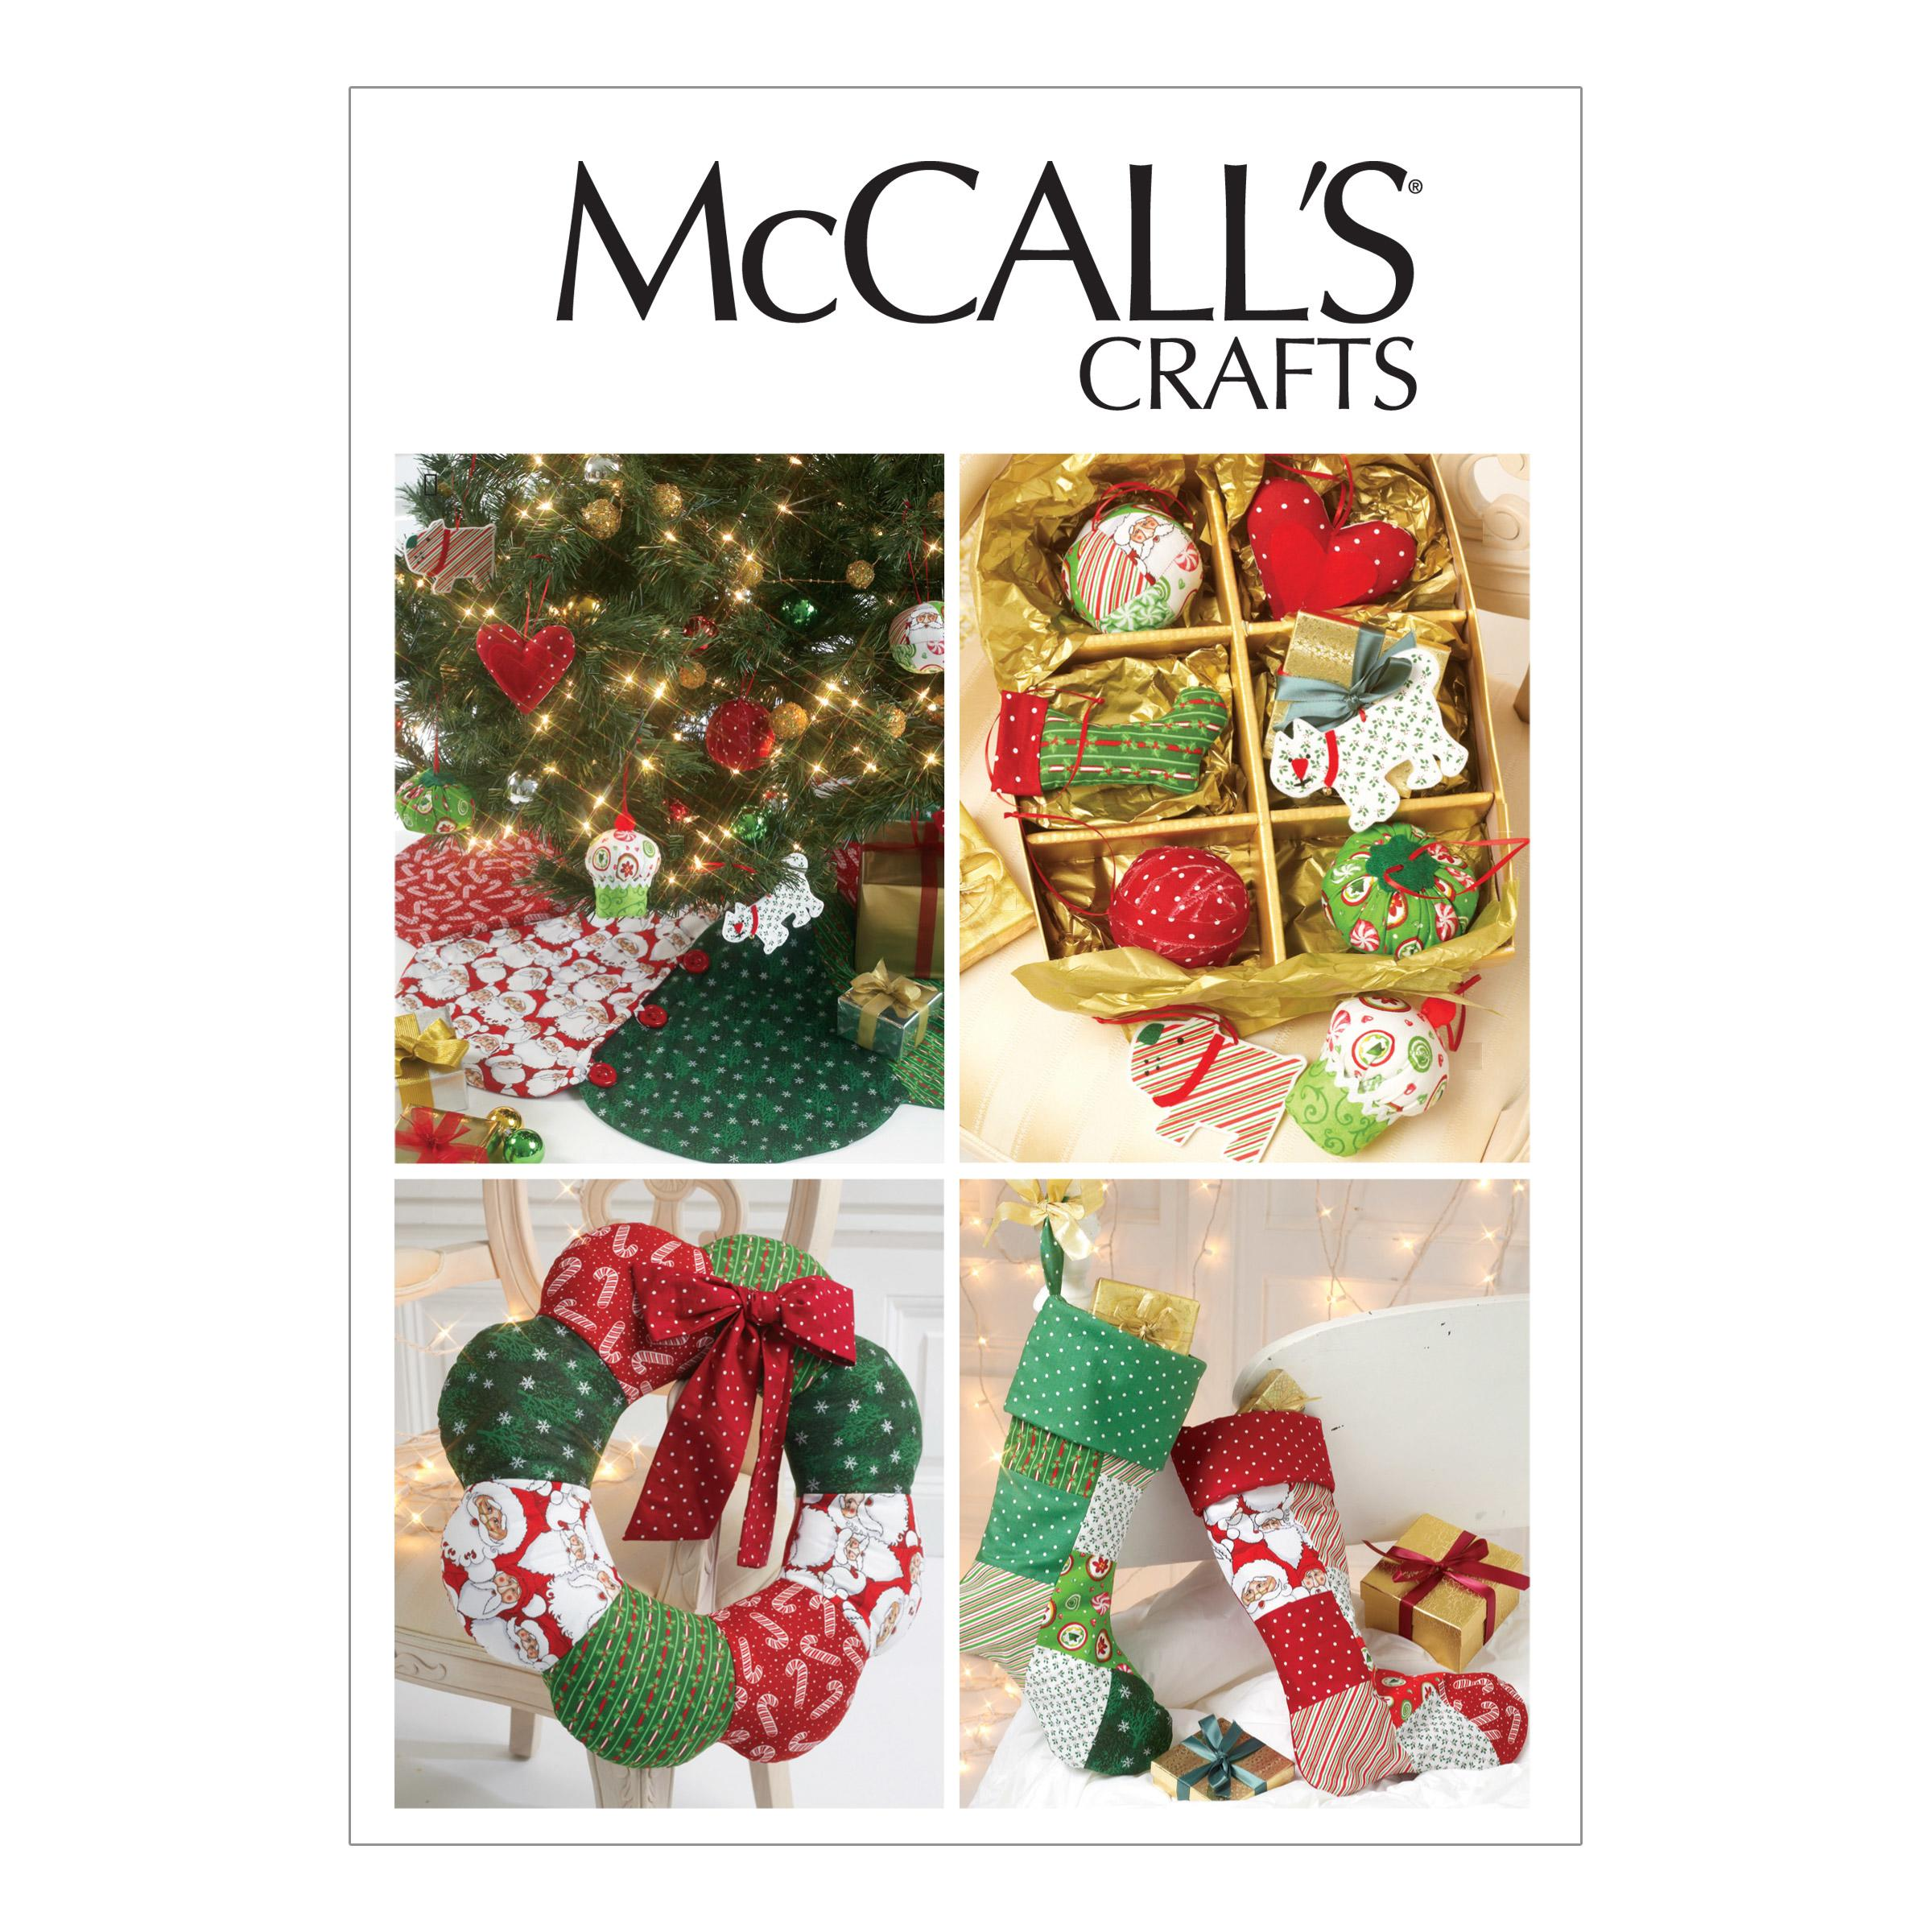 McCalls M6453 Crafts/Dolls/Pets, Home Decorating, Seasonal/Holiday